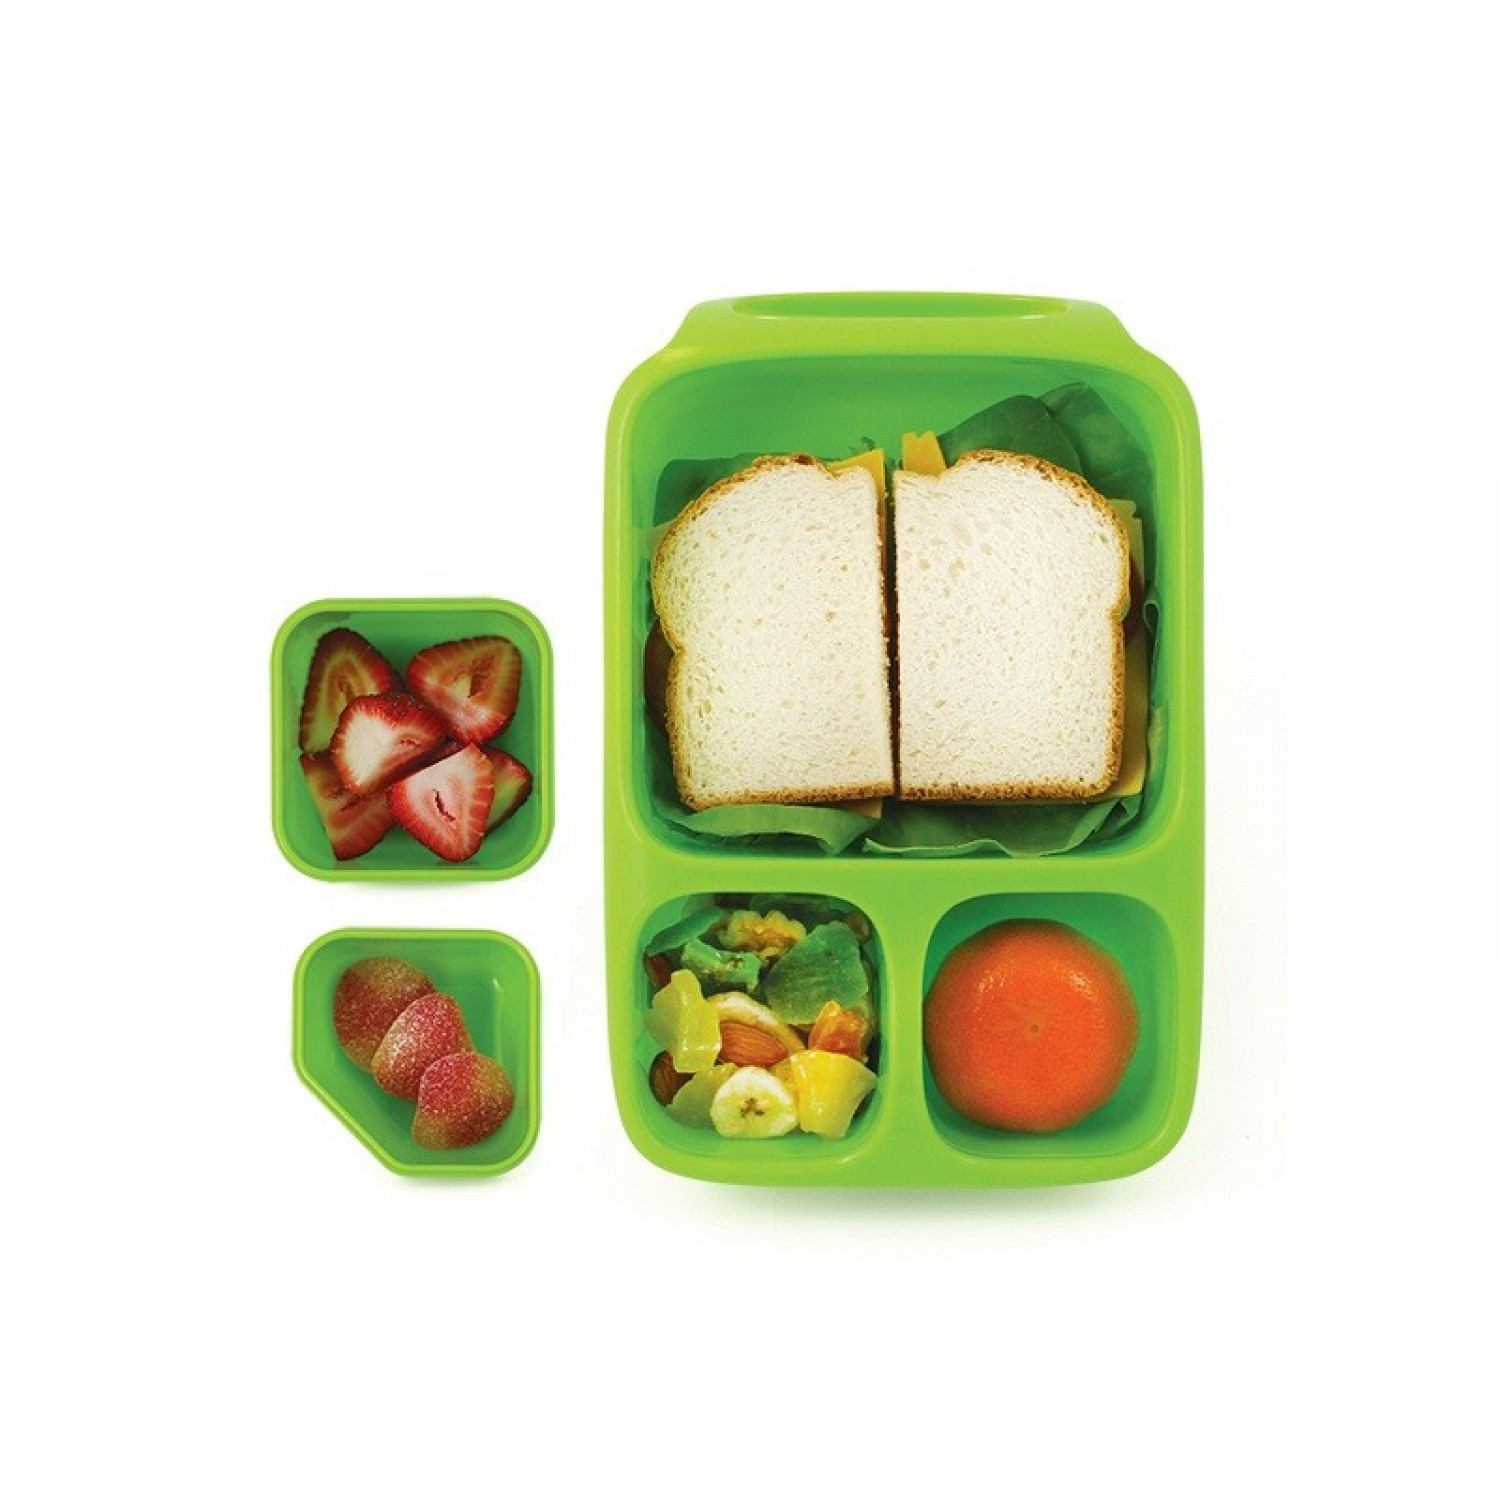 Goodbyn Hero Lunch Box mit 3 Kammern + Dippschalen